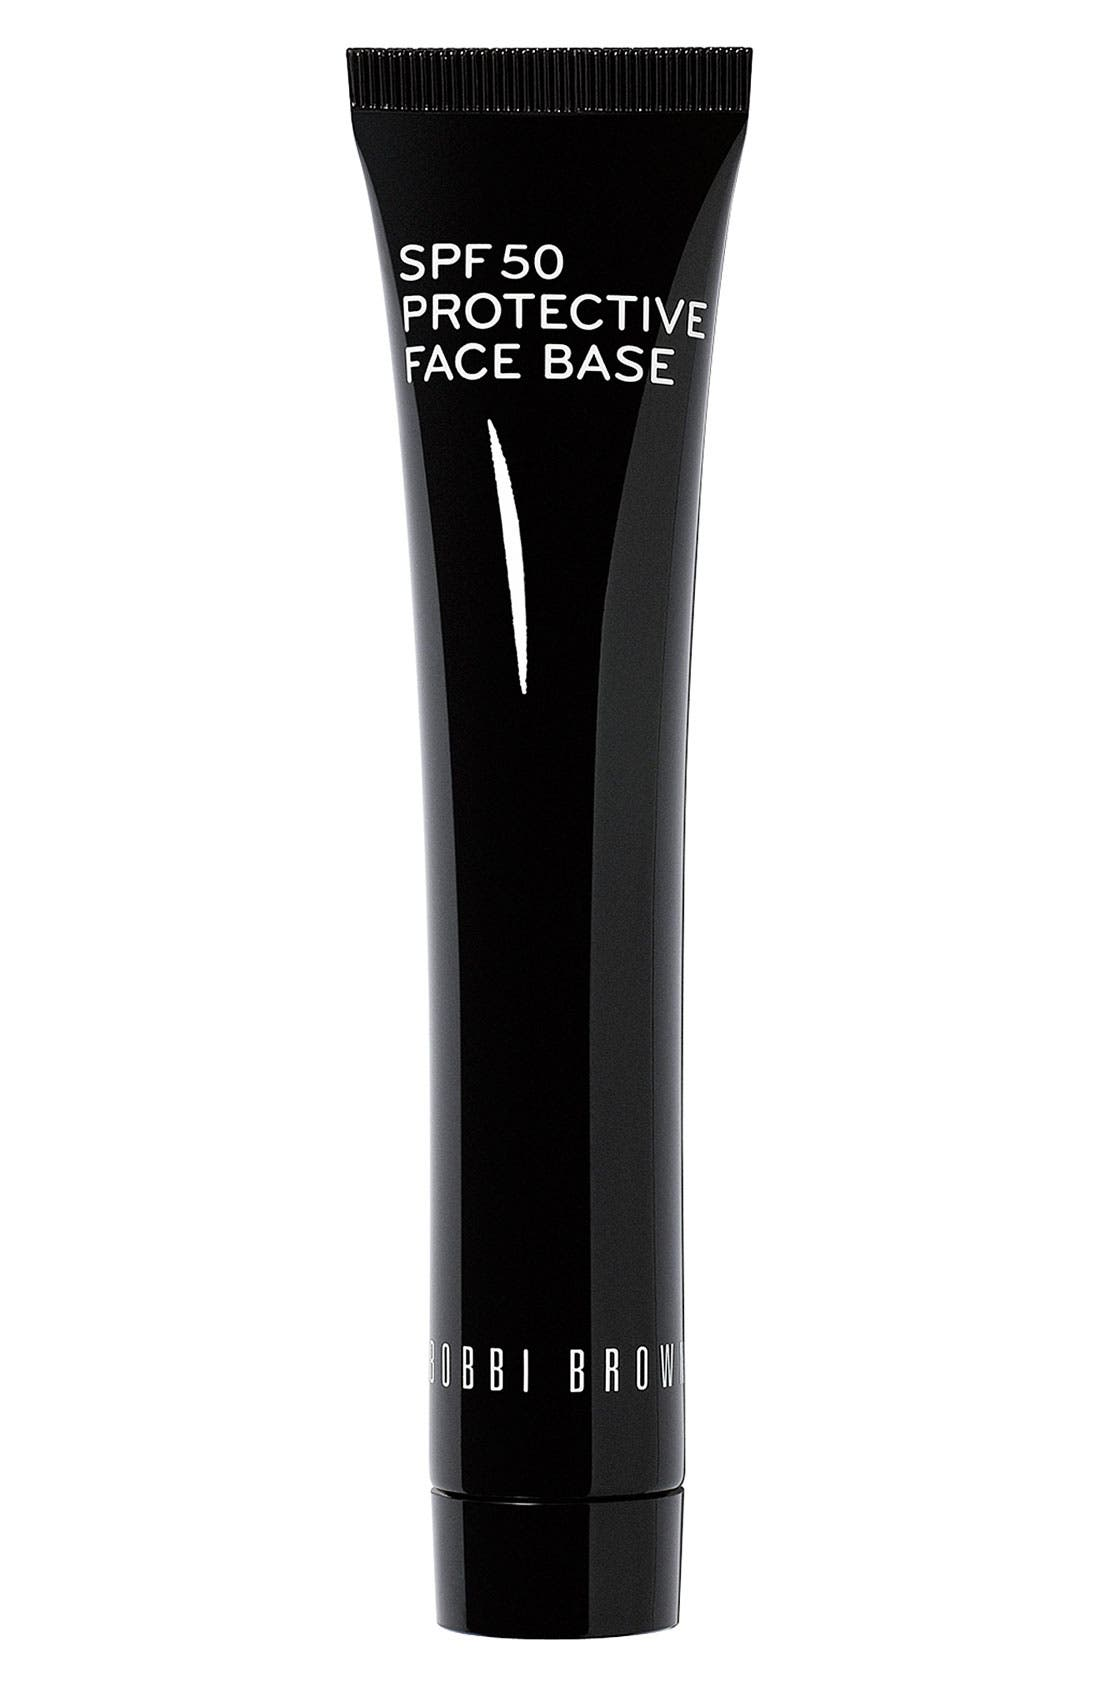 Bobbi Brown Protective Face Base SPF 50